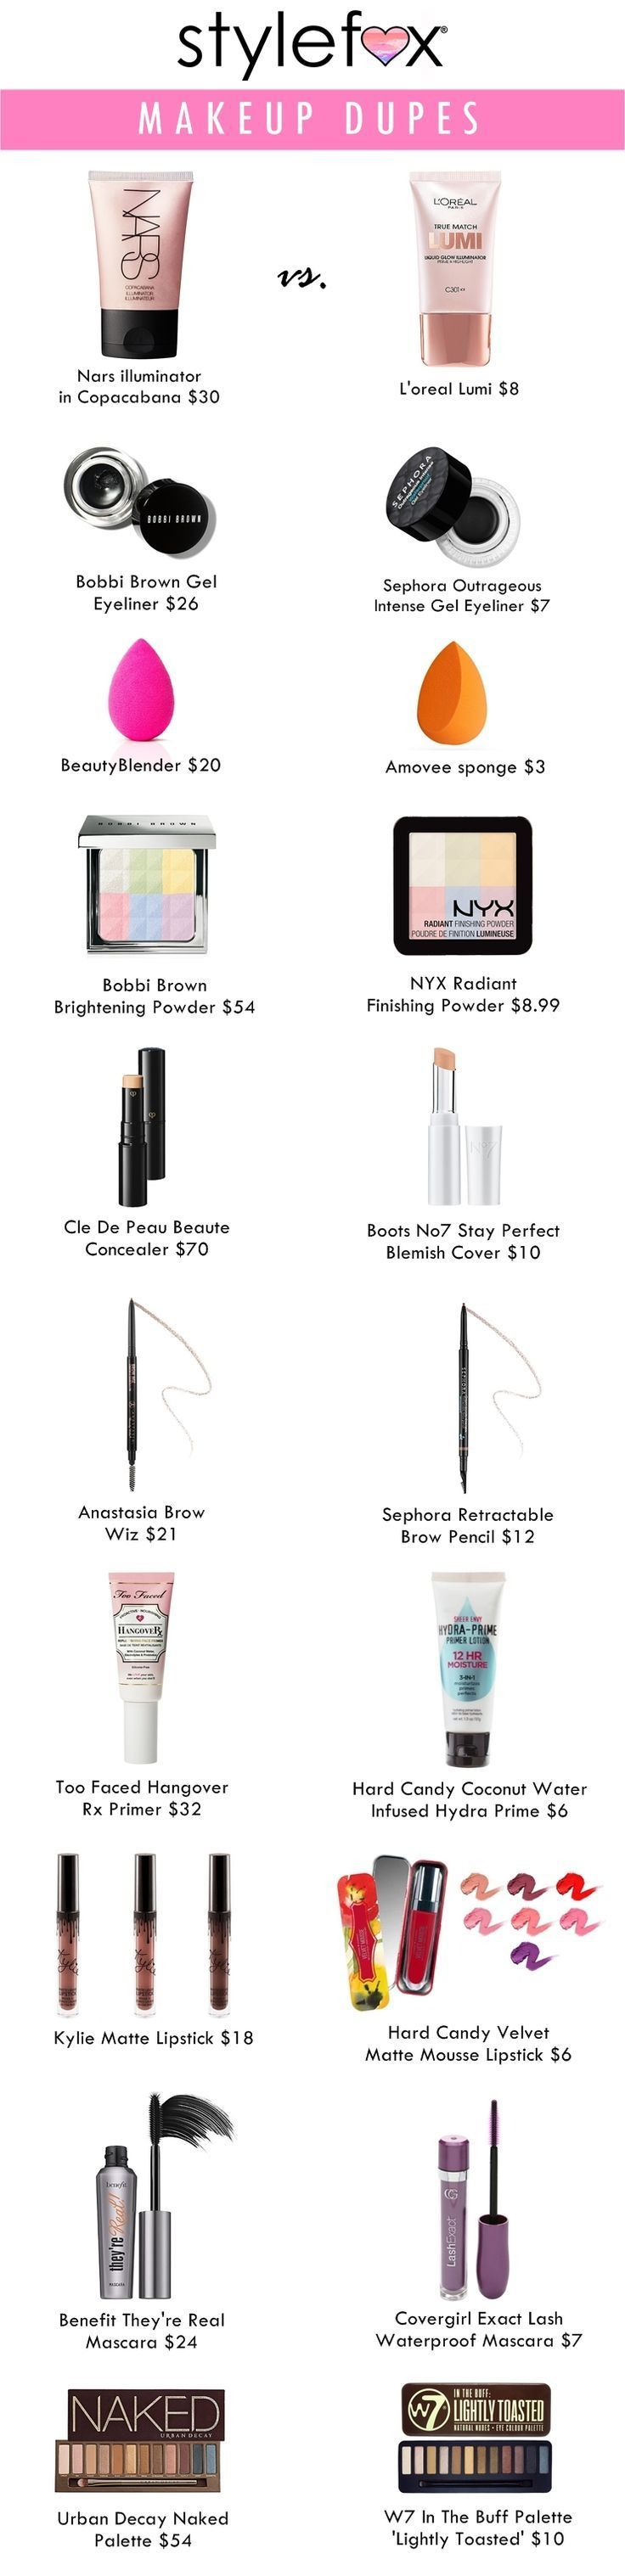 Infographic: 10 Best Makeup Dupes To Save You Money